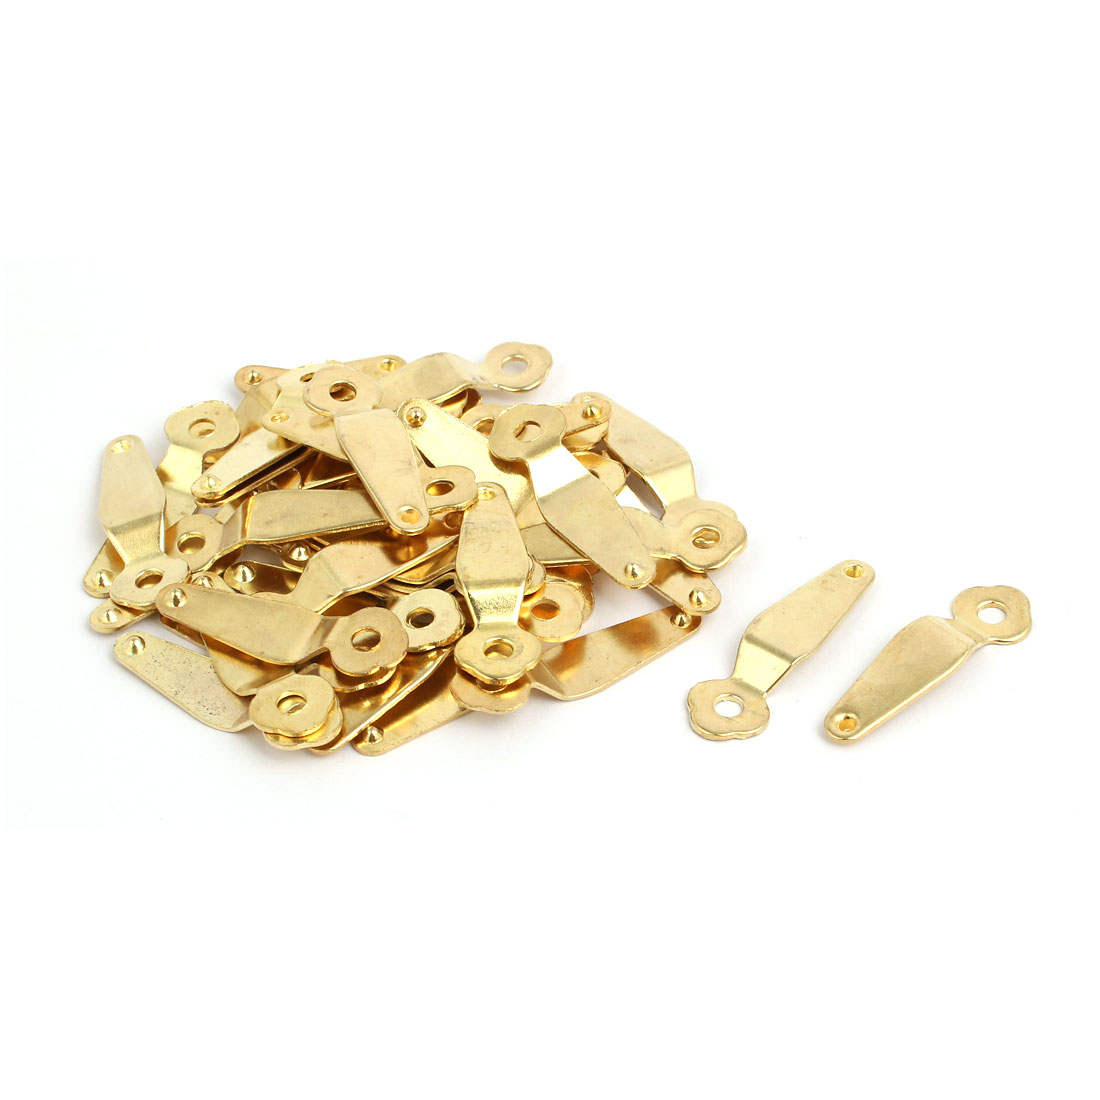 Uxcell 40pcs 40mmx12mmx1mm Picture Frame Turn Button Photo Turnbutton Gold Tone w Screw - image 4 of 4